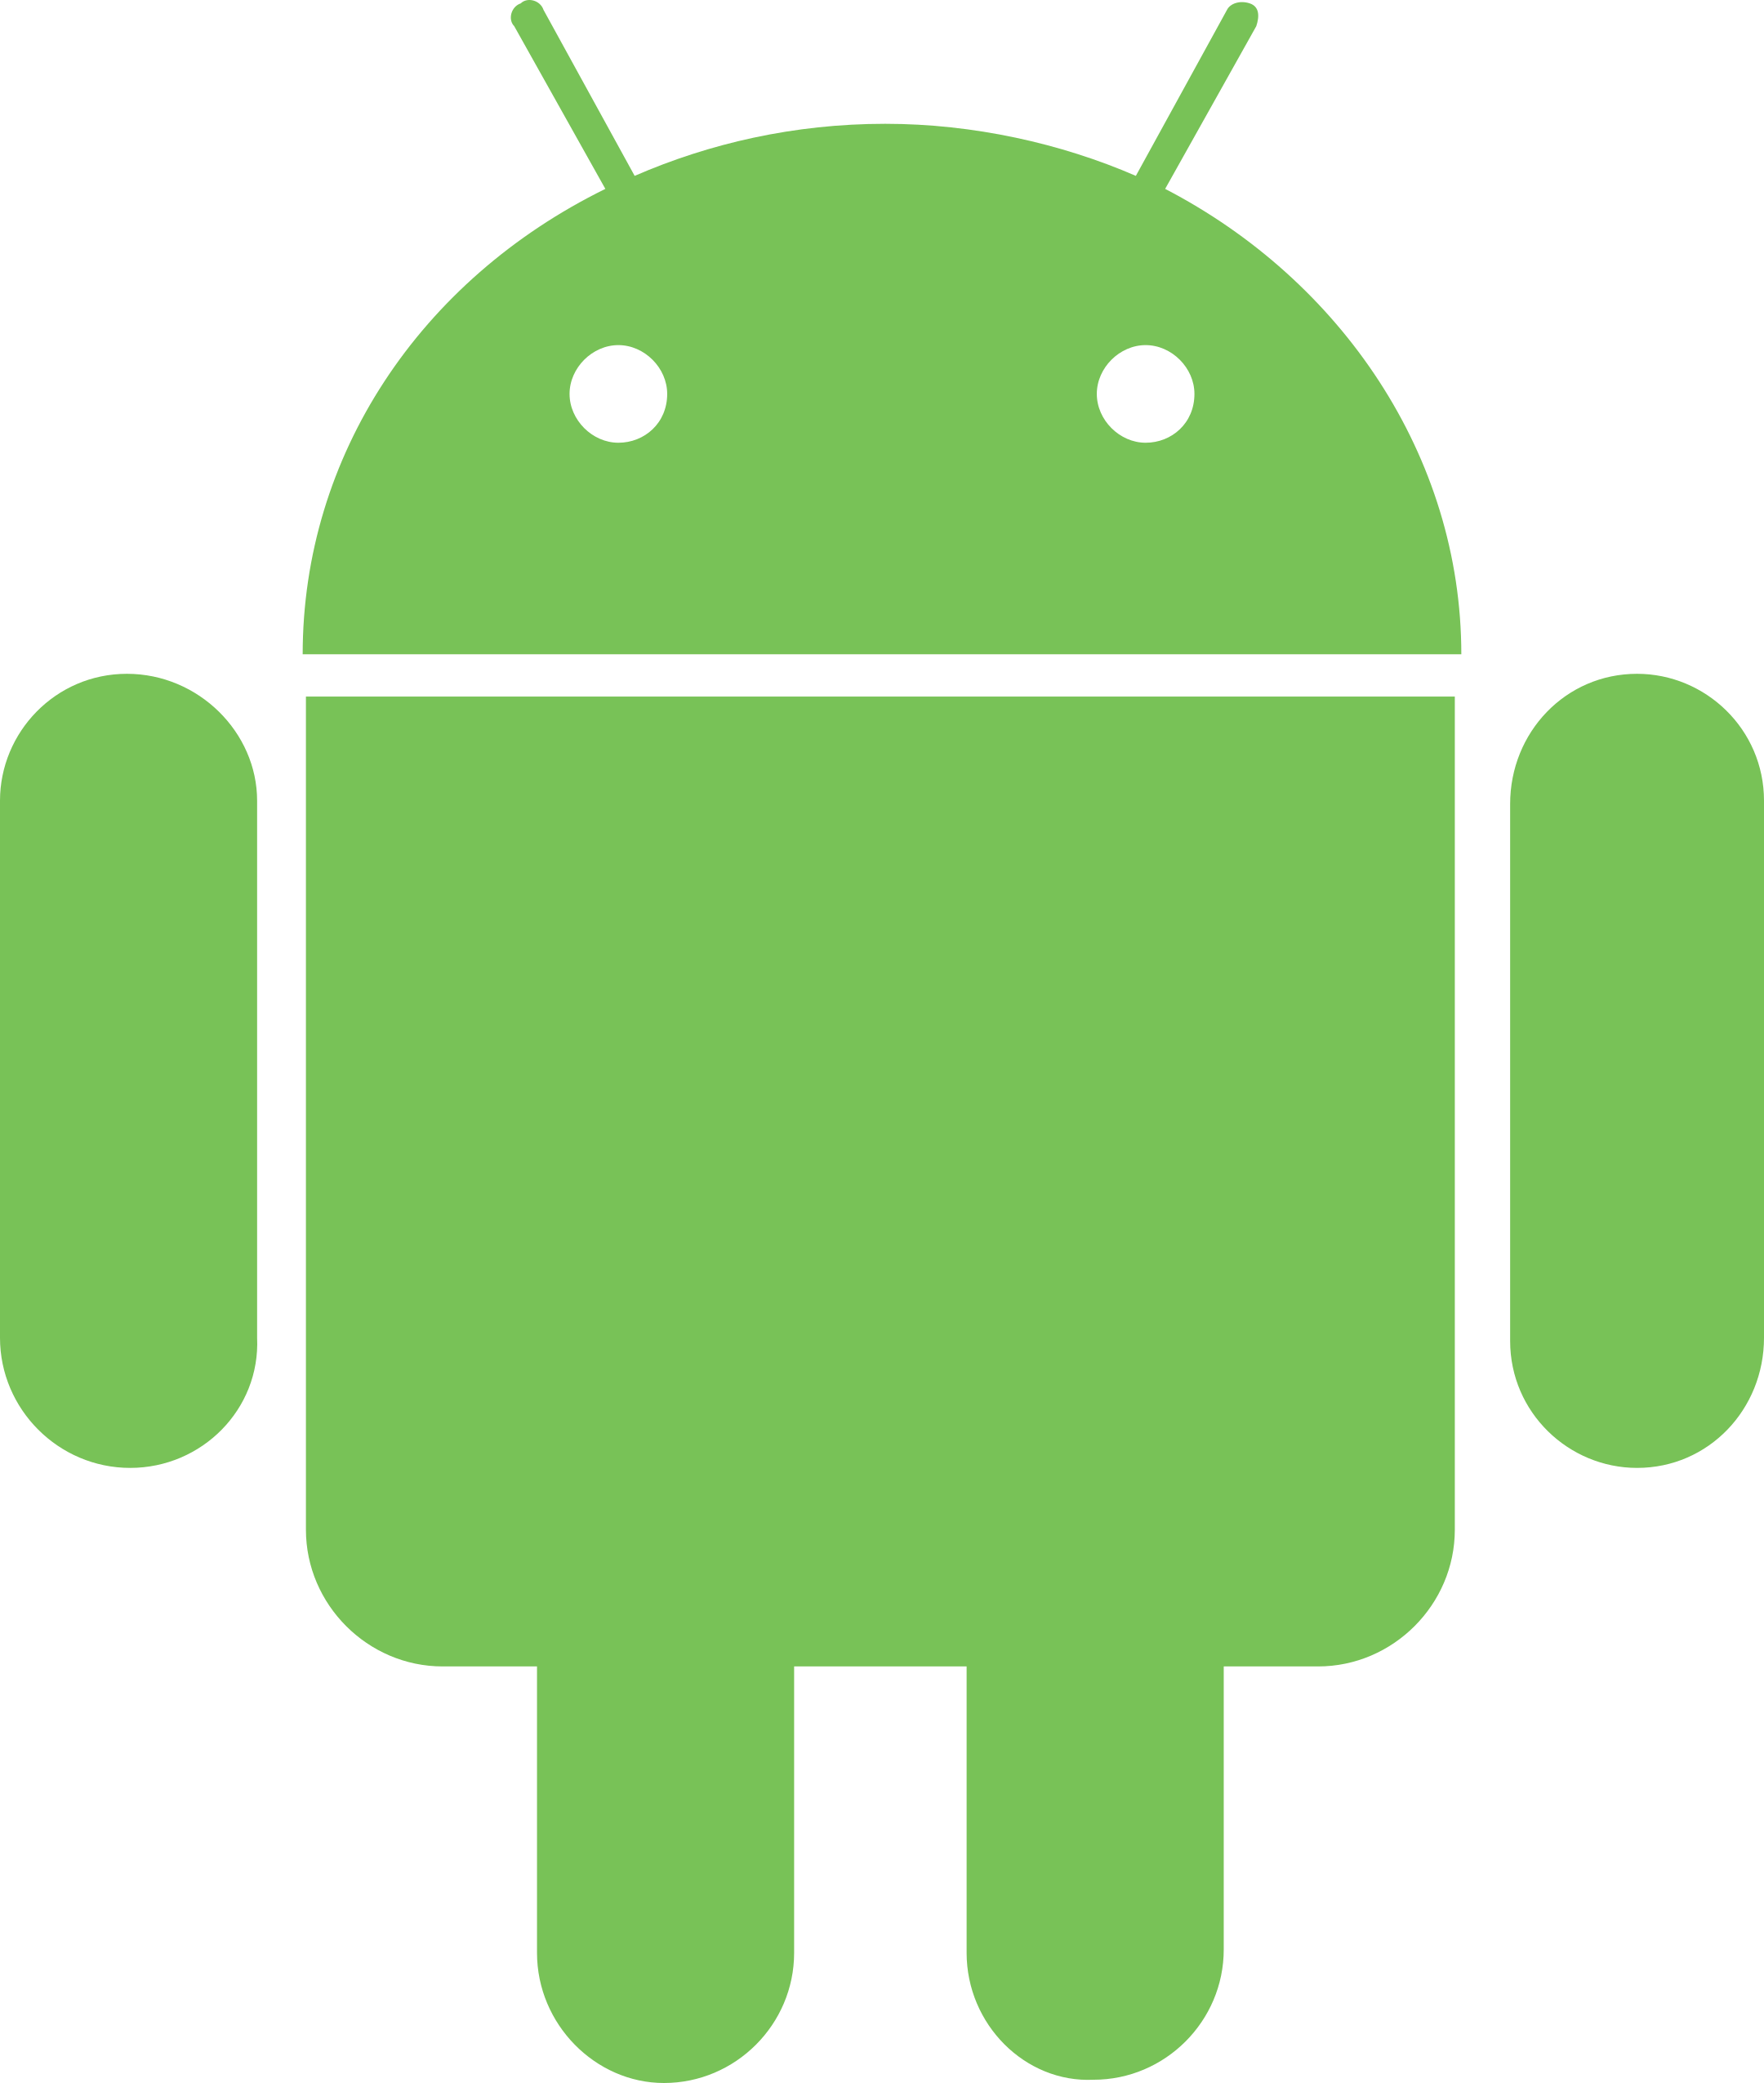 android logo 1 1 - Android Logo